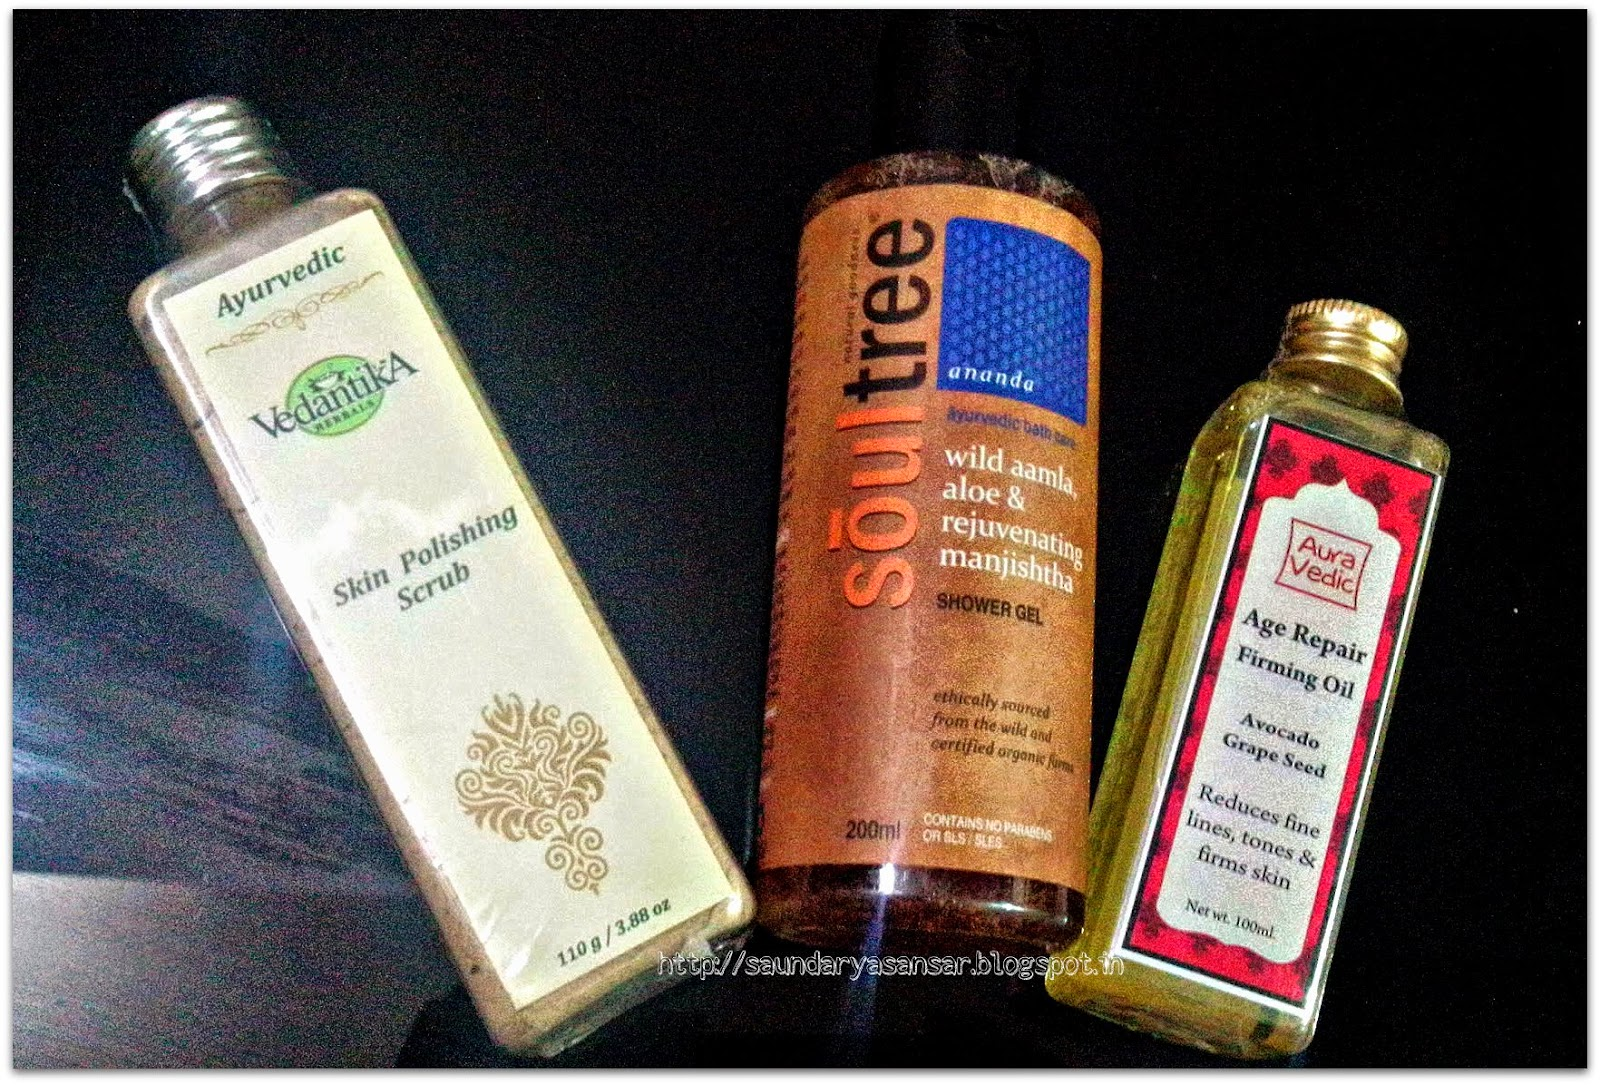 Vedantika Skin polishing Scrub, Soultree Wild Amla Shower gel, AuraVedic Age Repair Firming Oil First Impressions